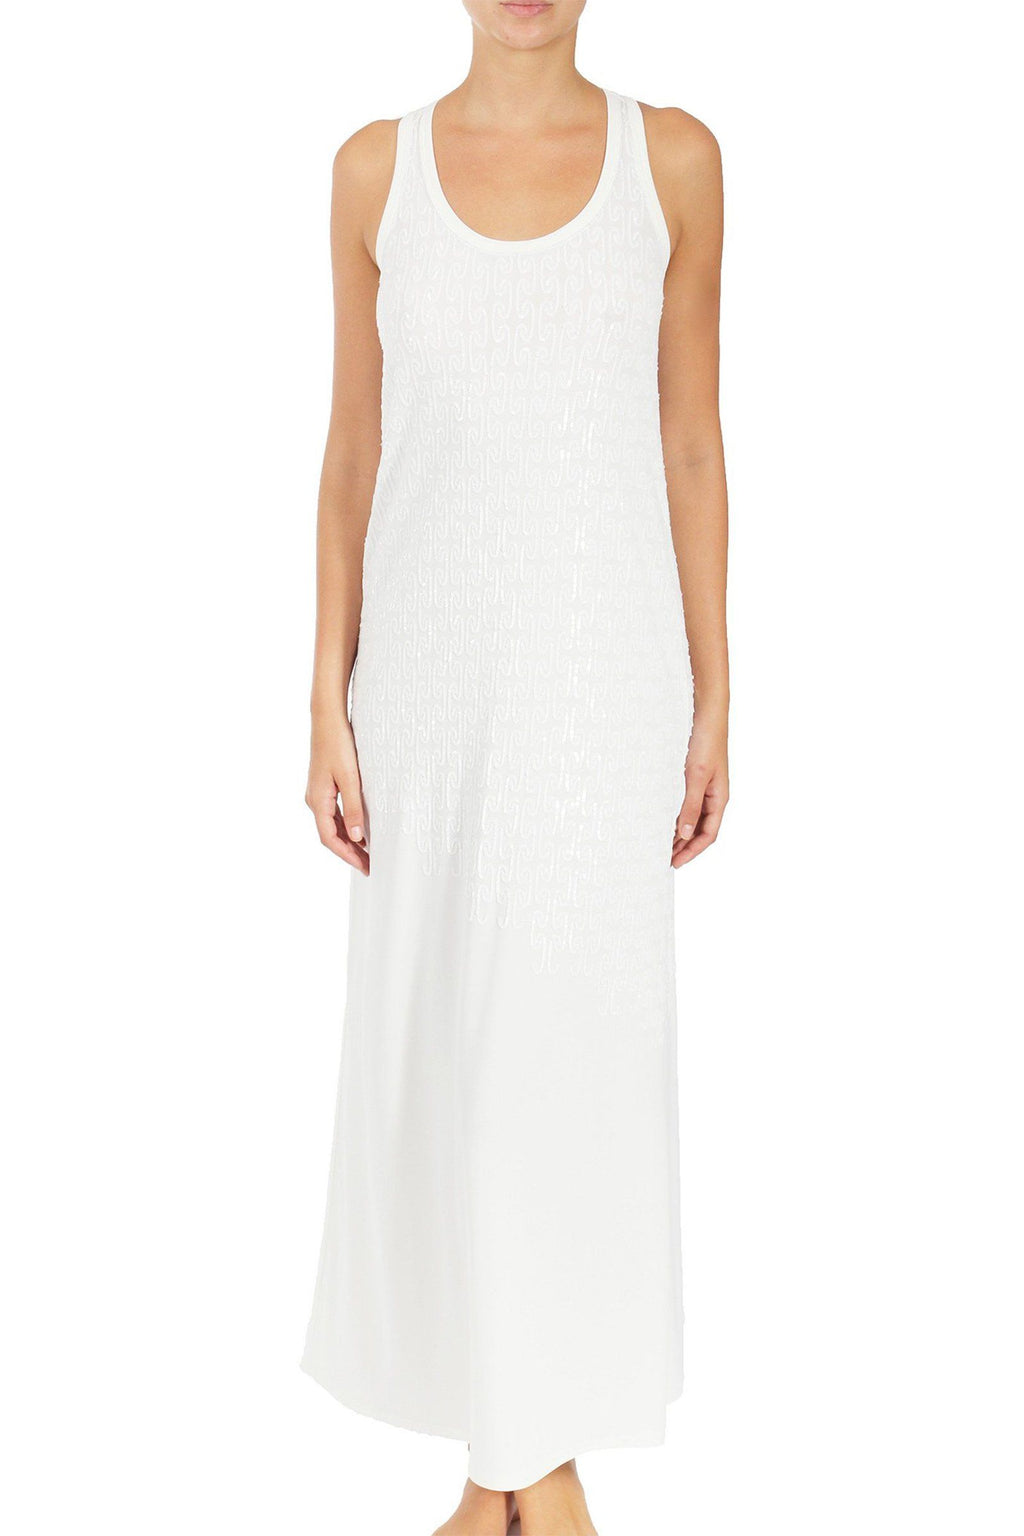 Sequined Racer Back Jersey Dress Dresses Marie France Van Damme White 0